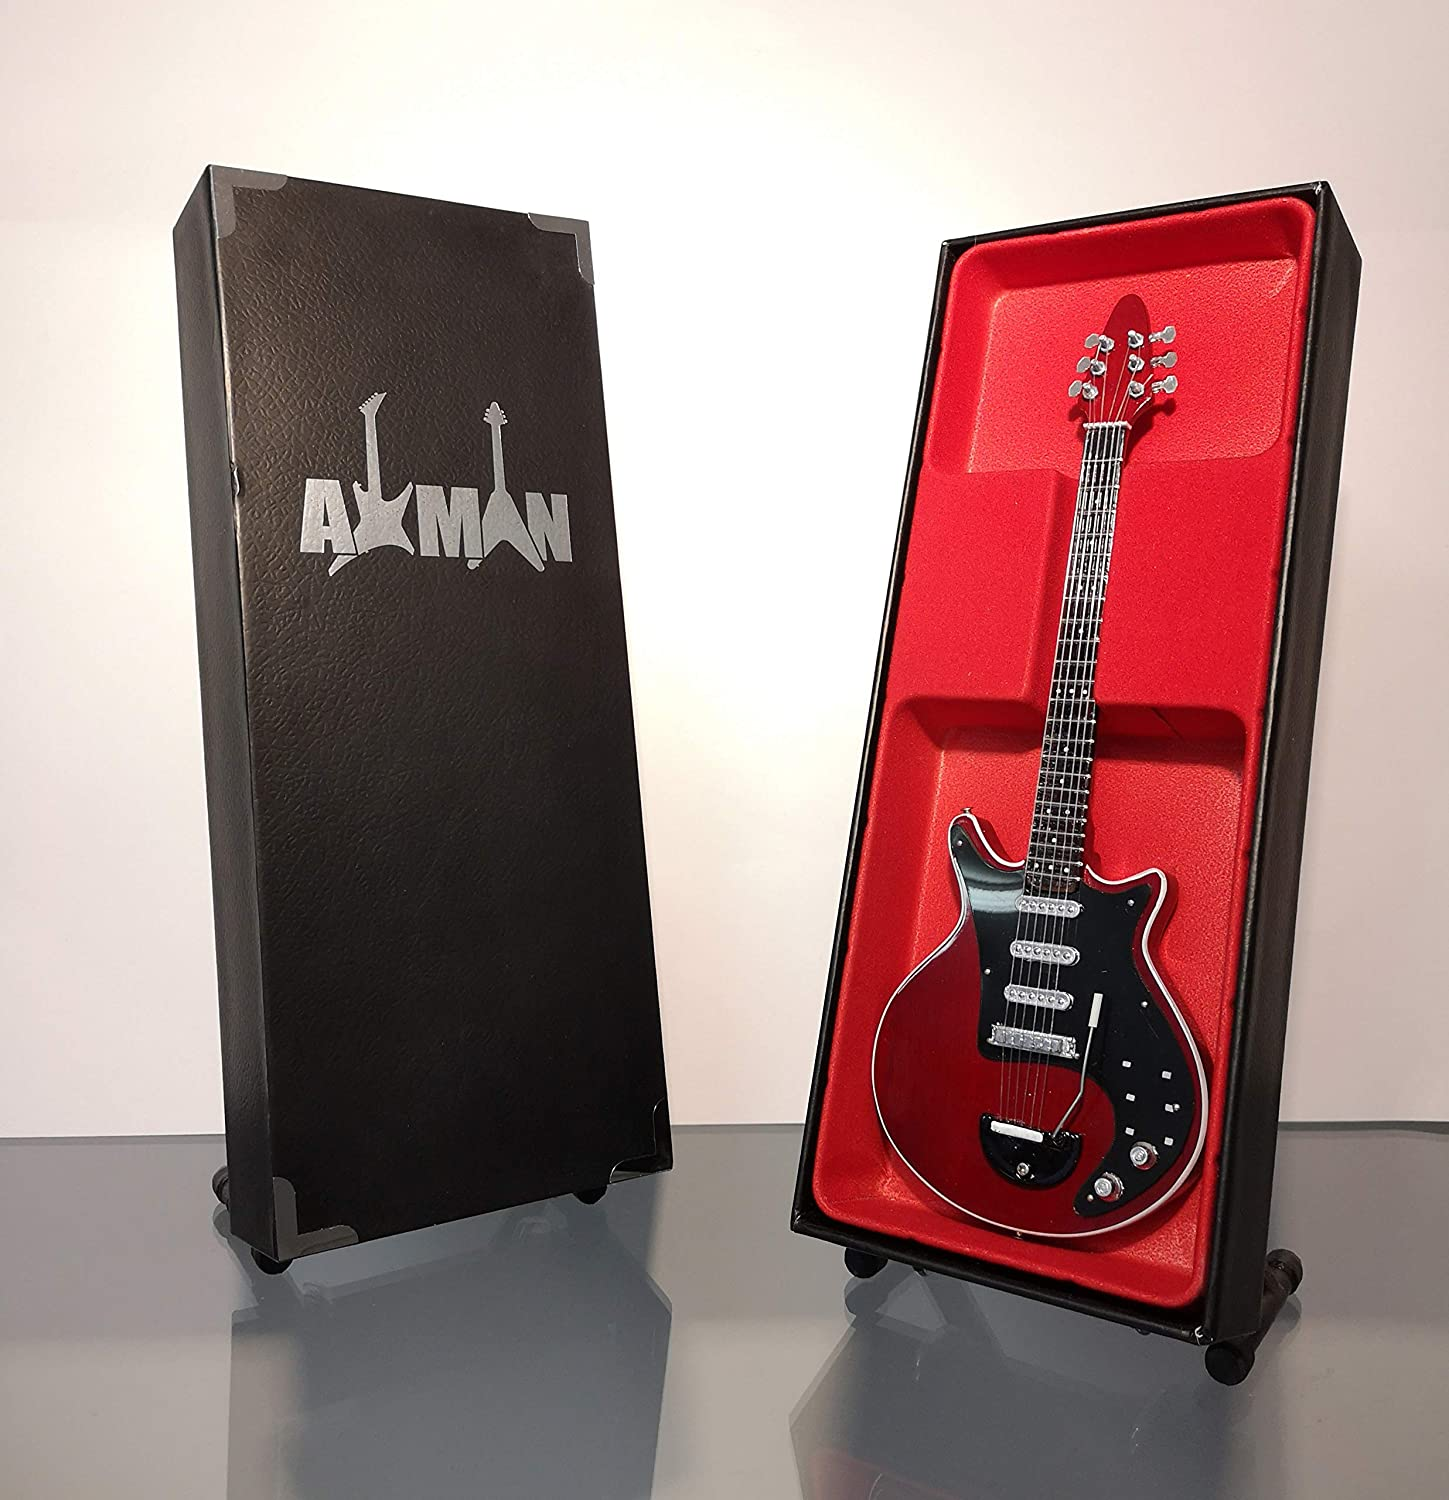 Brian May Queen Red Especial - Réplica de guitarra en miniatura: